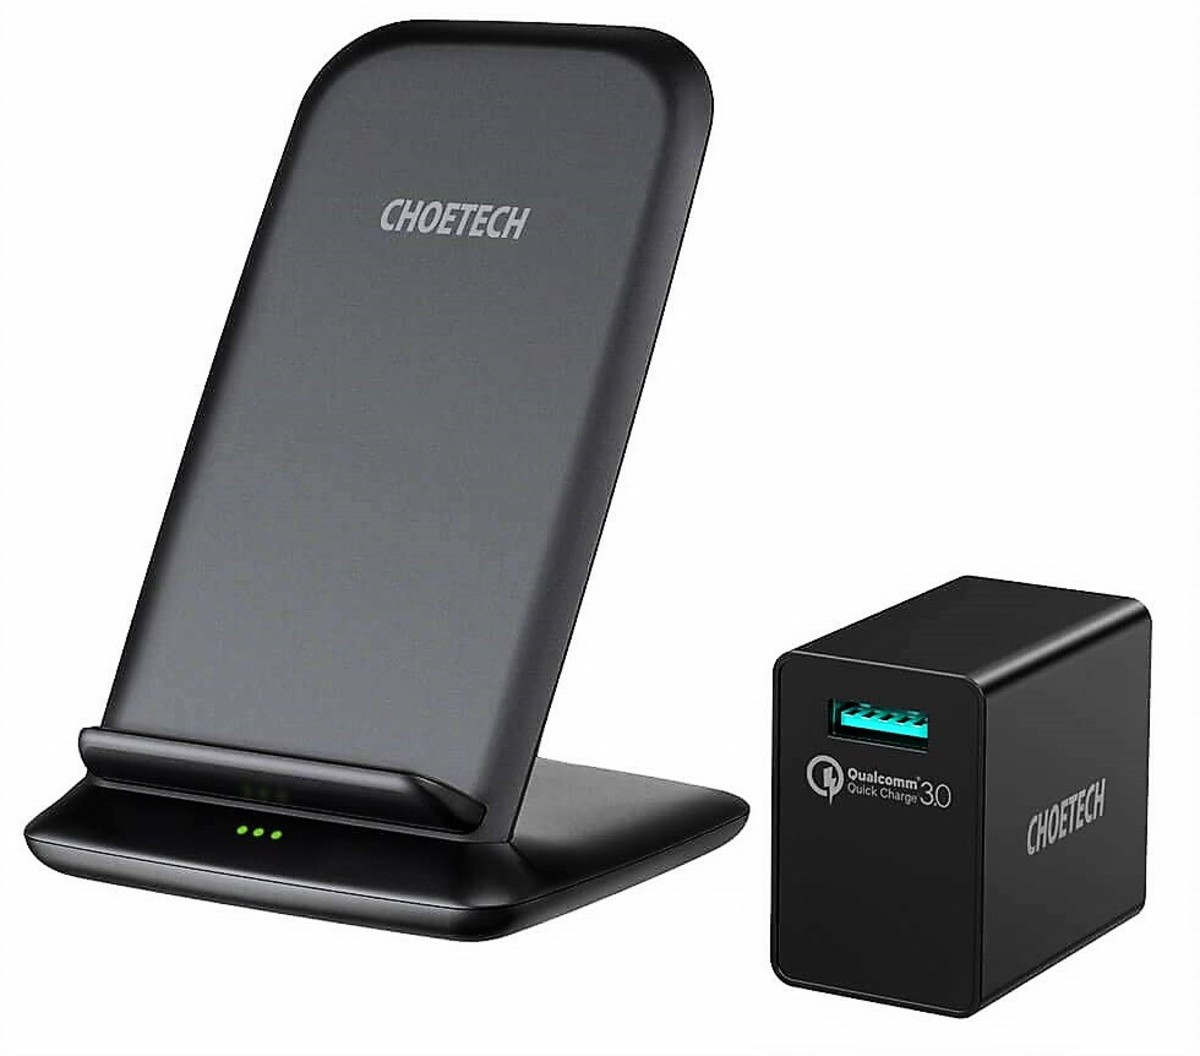 Choetech 15W Wireless Charging Stand Review: Fastest Qi Charger?